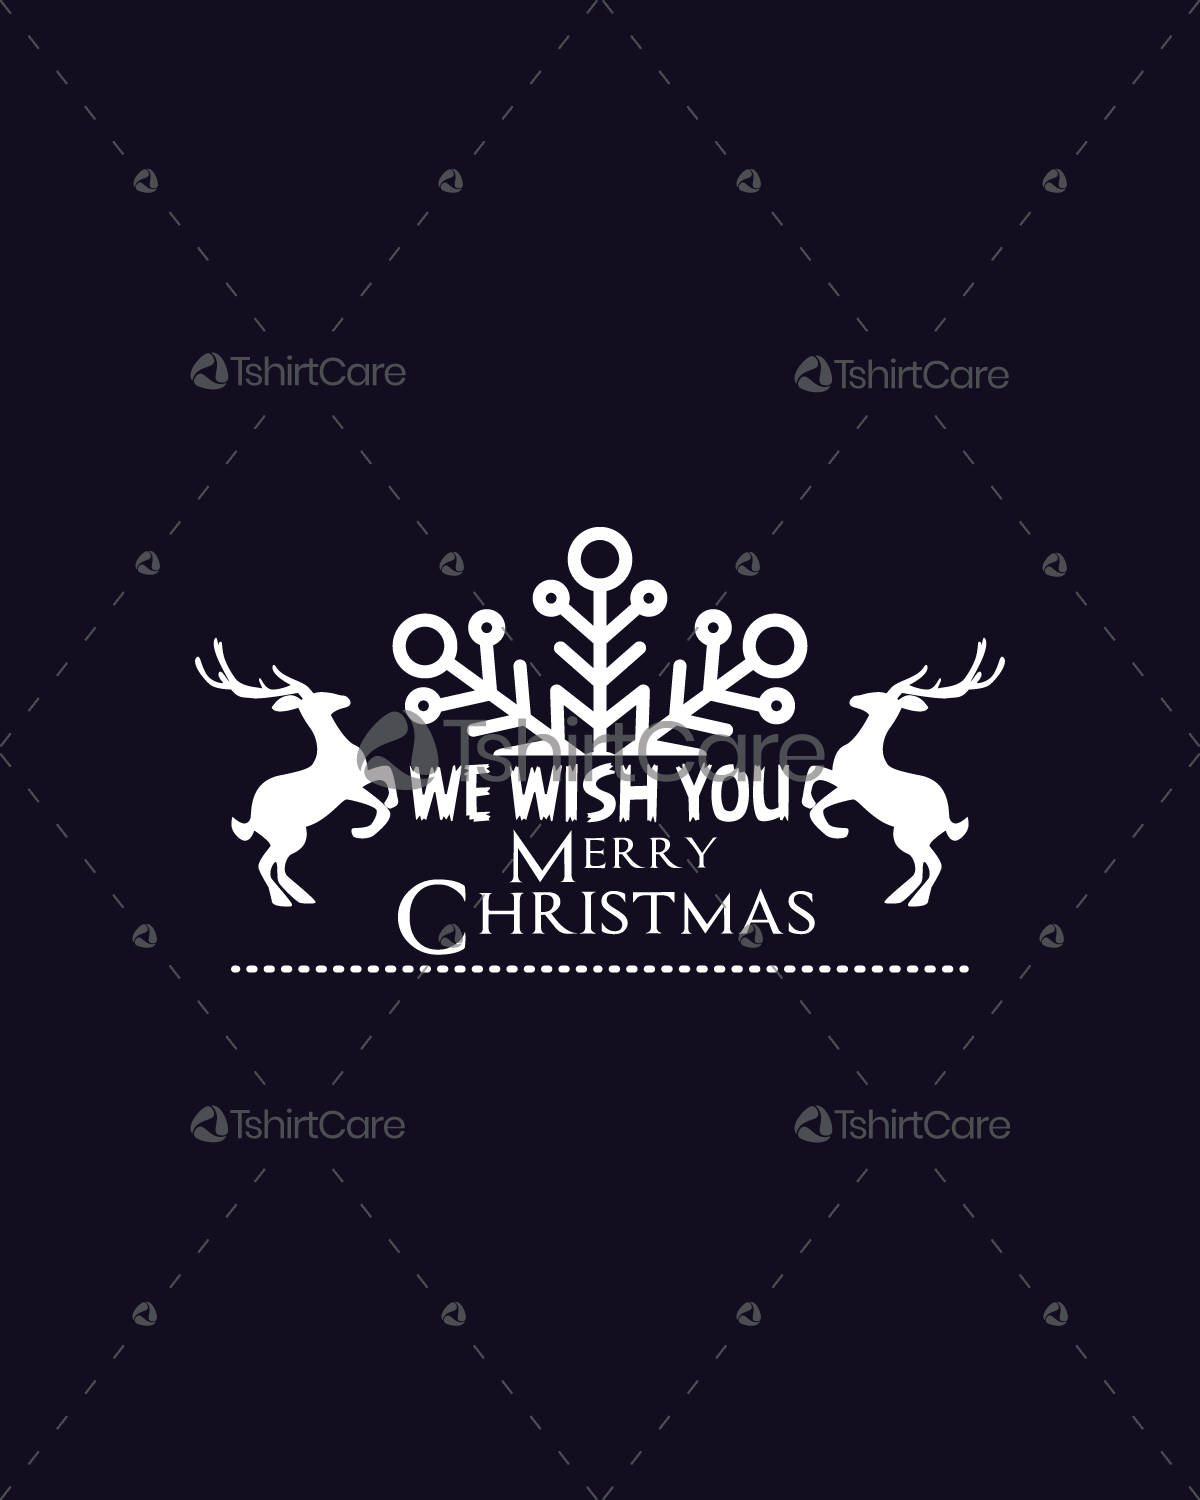 Wishing You A Merry Christmas.We Wish You A Merry Christmas T Shirt Design Christmas Holiday T Shirts For Event Party Women S Tshirtcare